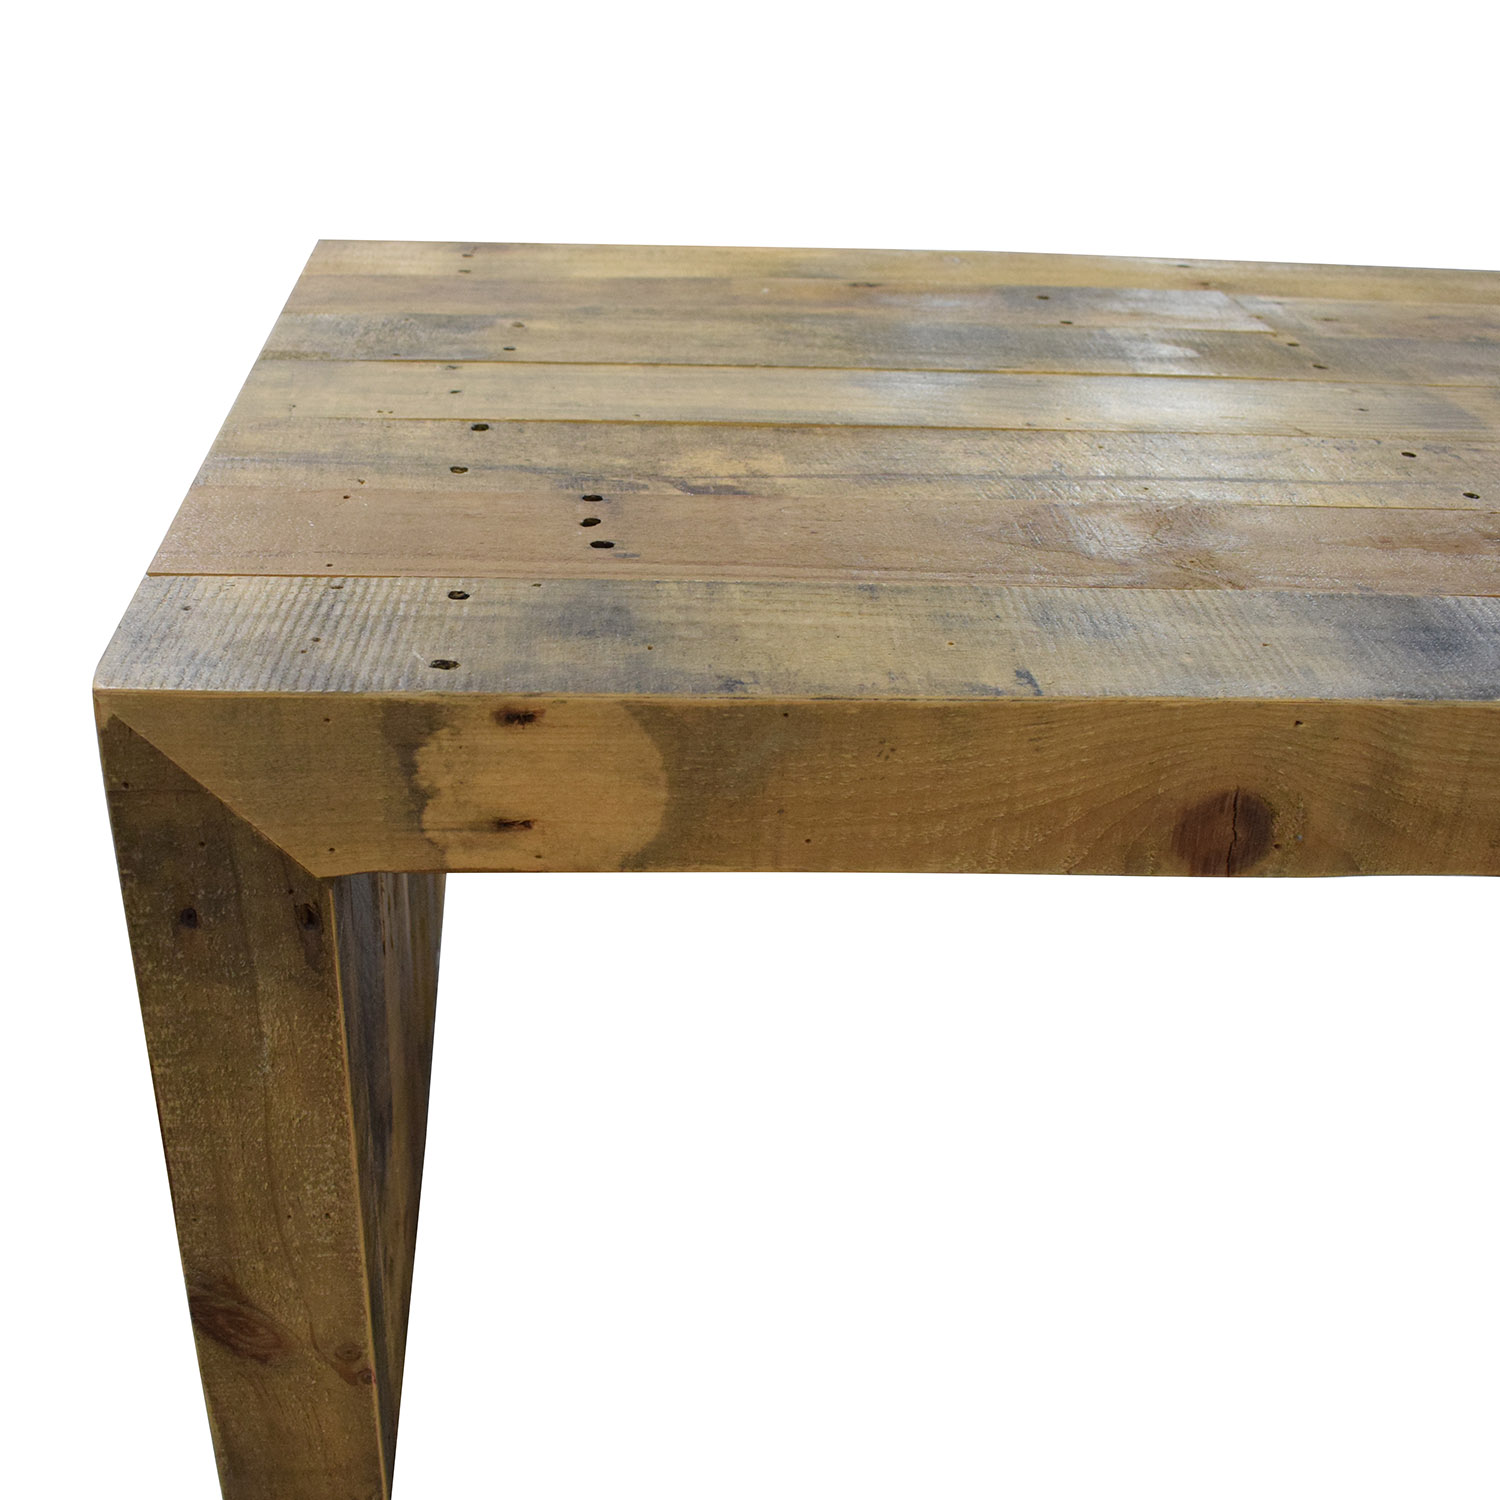 West Elm West Elm Emmerson Reclaimed Coffee Table ct